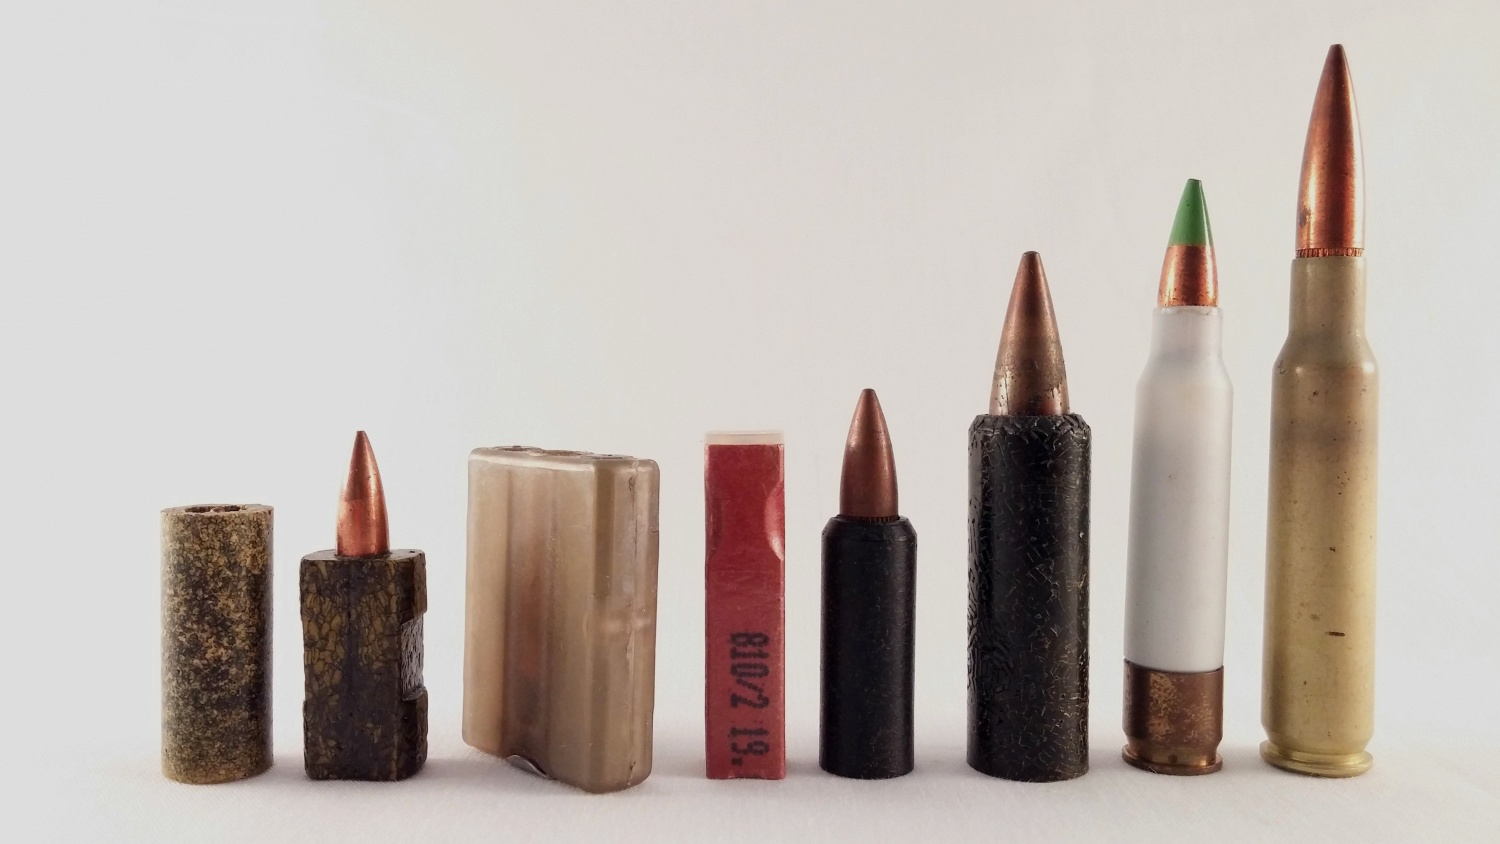 Iron Claw Bullets 5g Bullet Weight